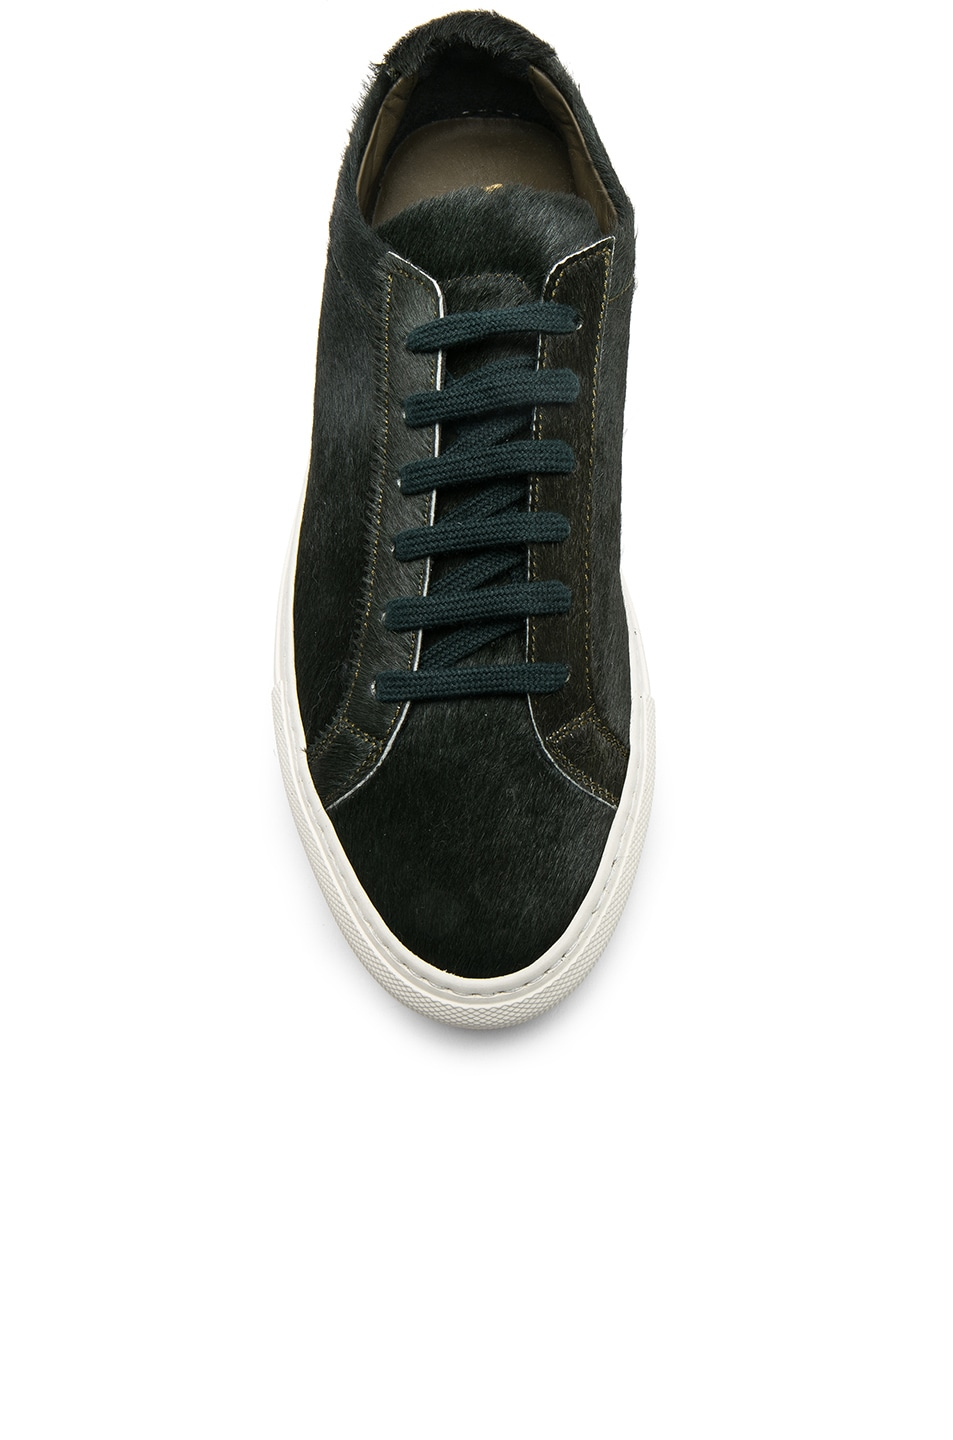 Image 4 of Common Projects Original Calf Hair Achilles Low in Green